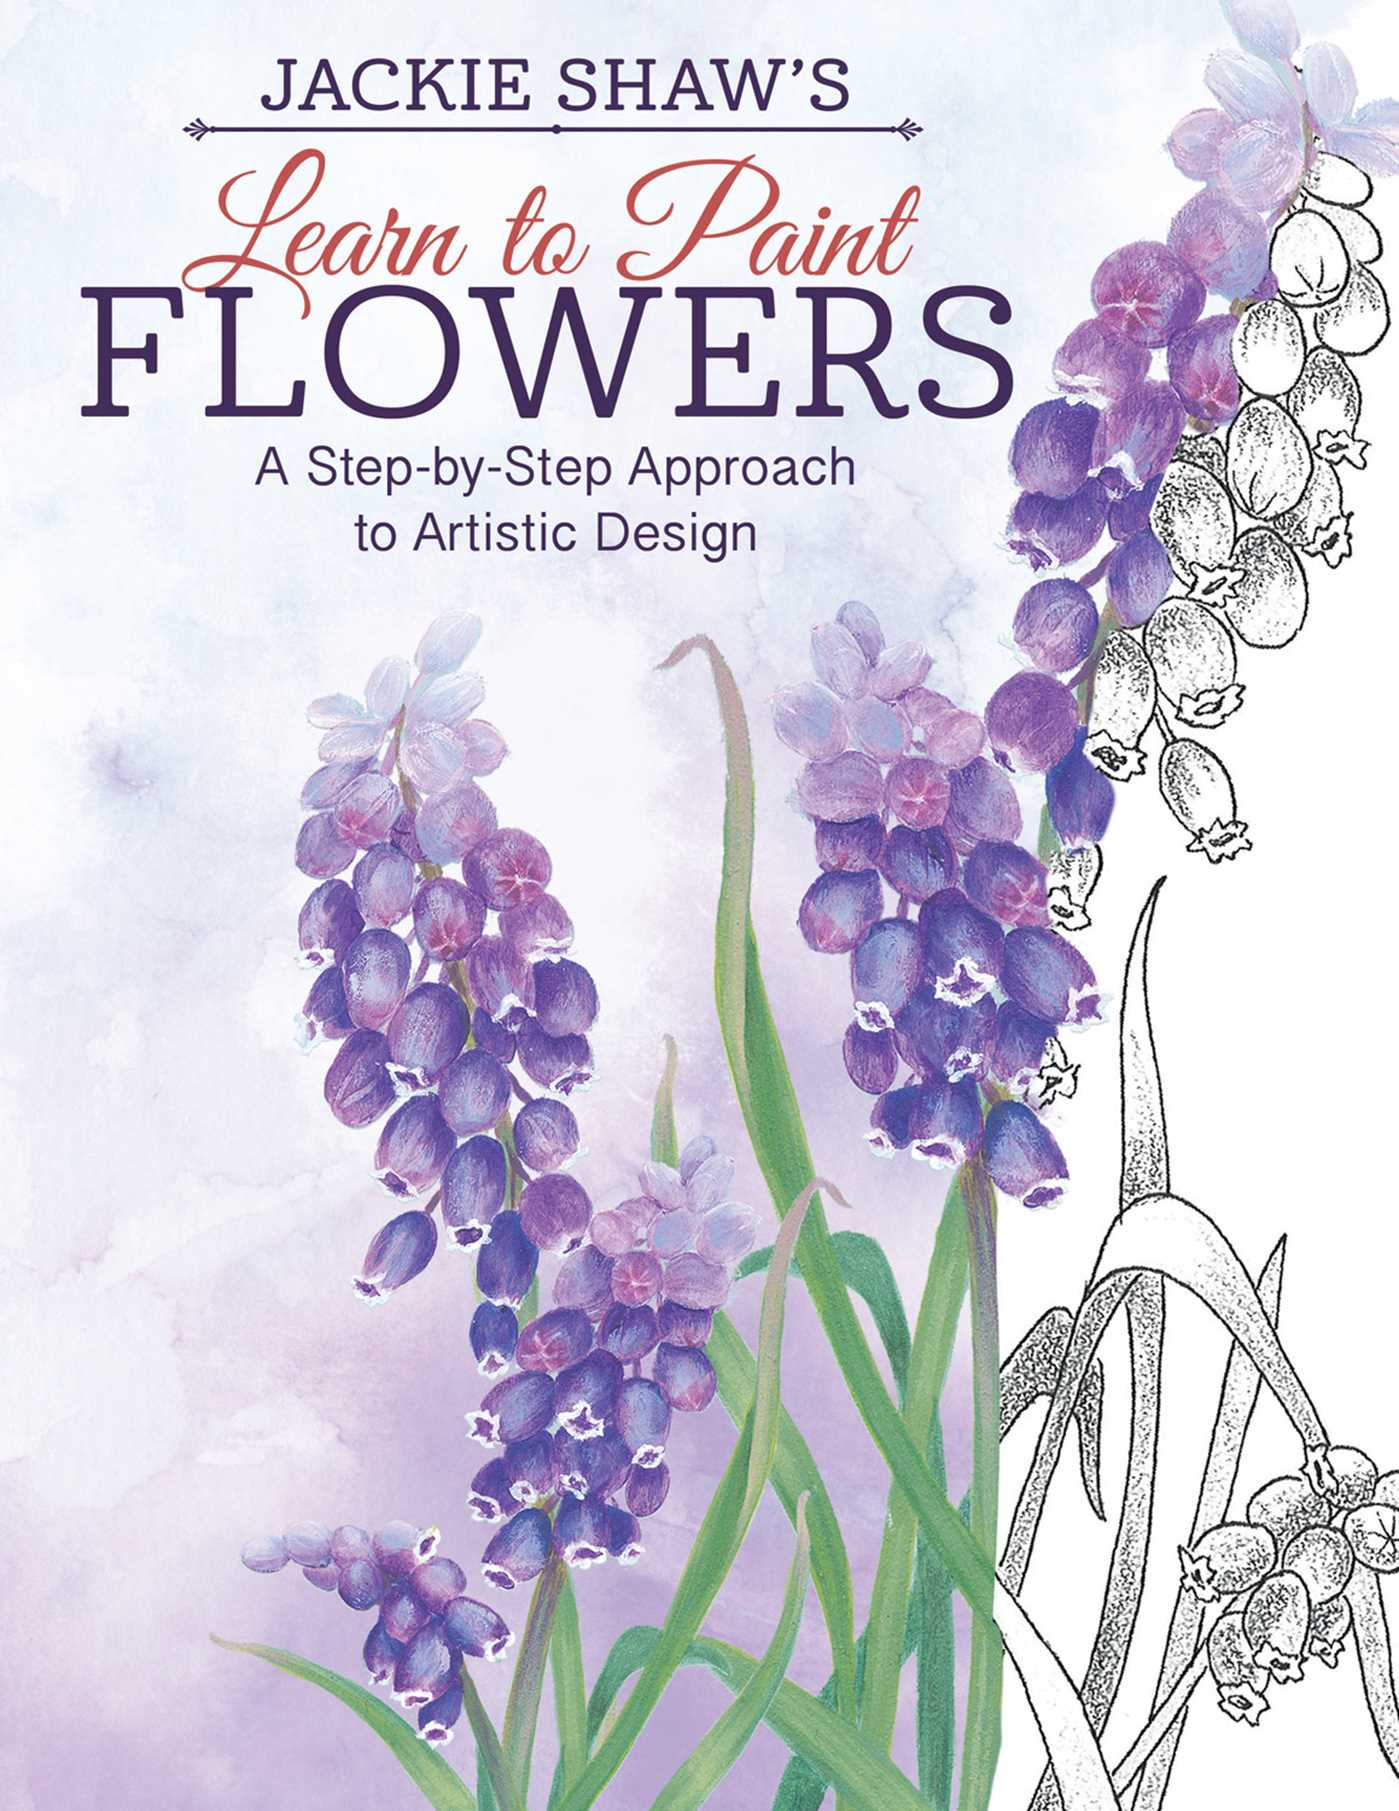 jackie shaw s learn to paint flowers book by jackie shaw